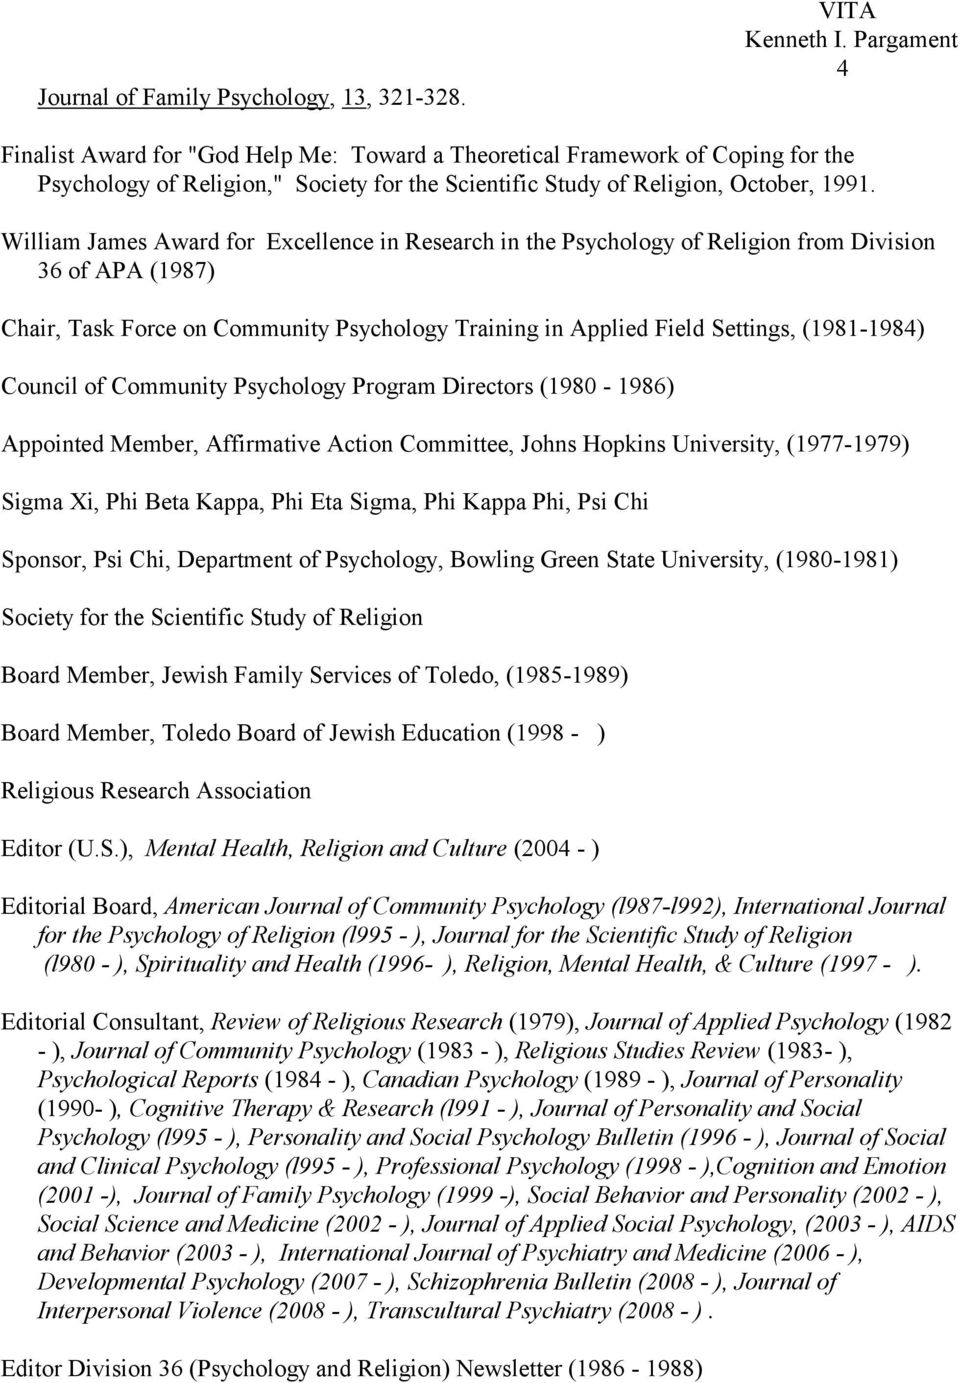 William James Award for Excellence in Research in the Psychology of Religion from Division 36 of APA (1987) Chair, Task Force on Community Psychology Training in Applied Field Settings, (1981-1984)